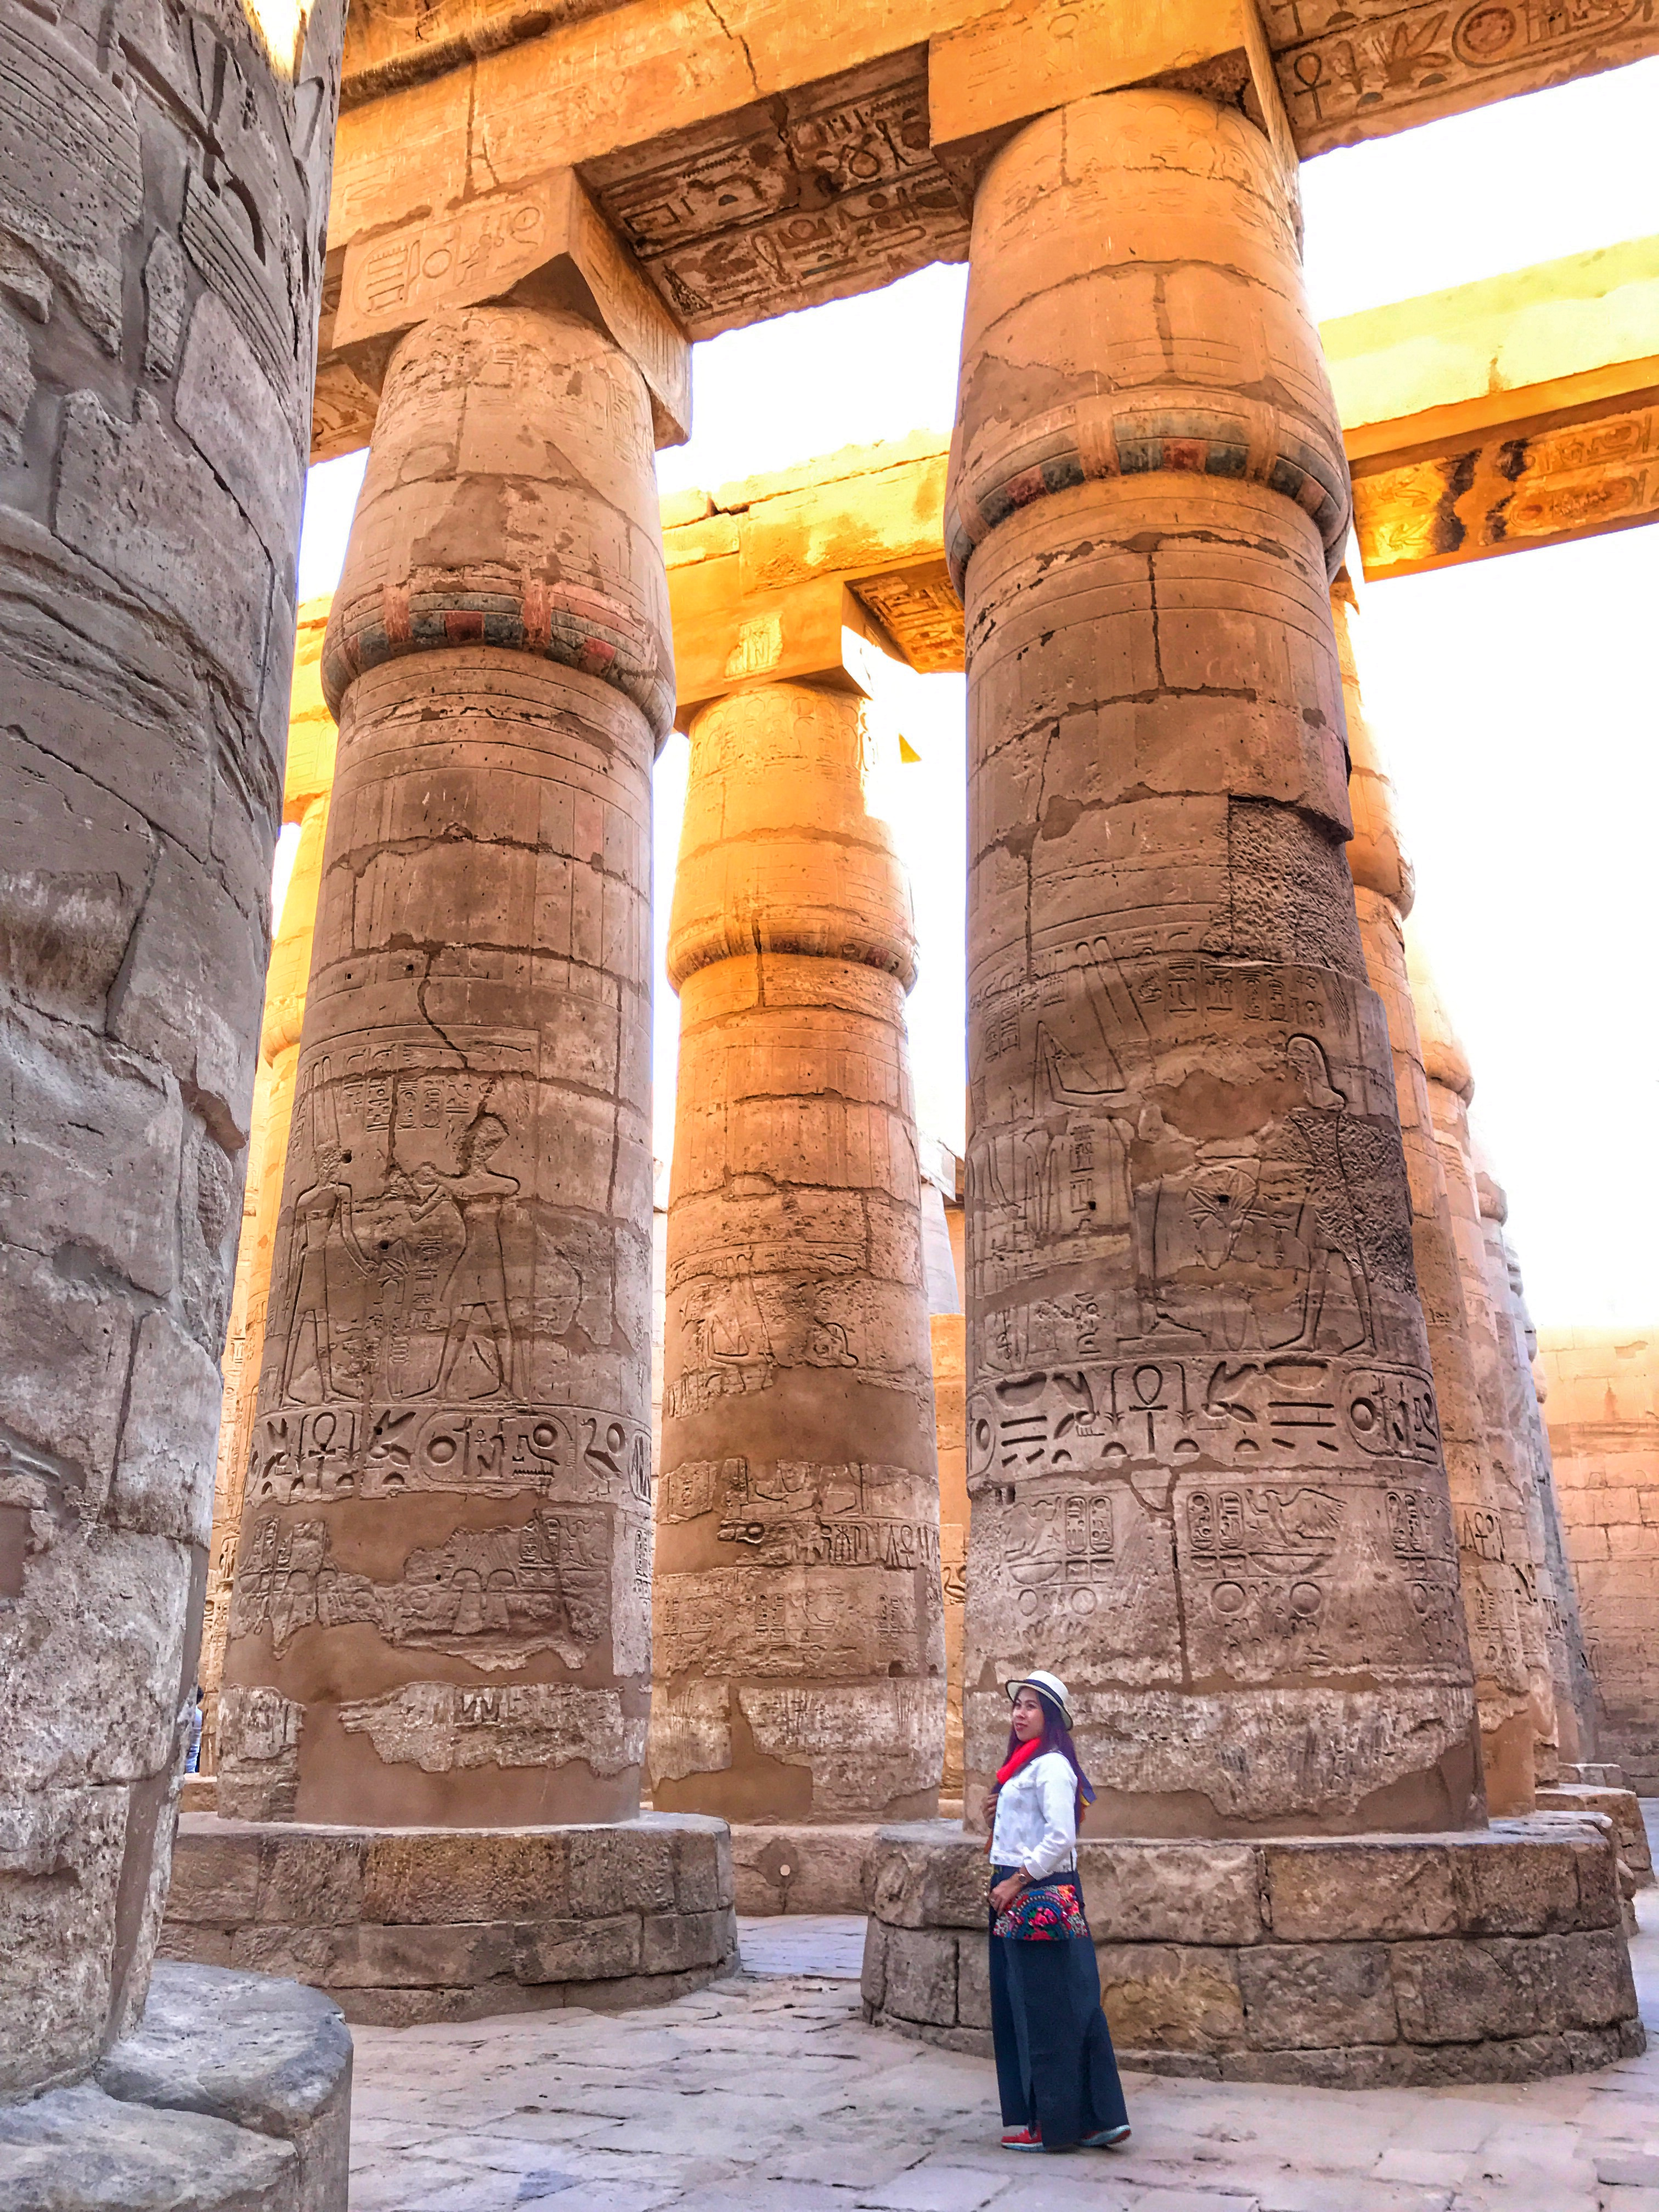 World 2nd Largest Religious Temple, Karnak Temple